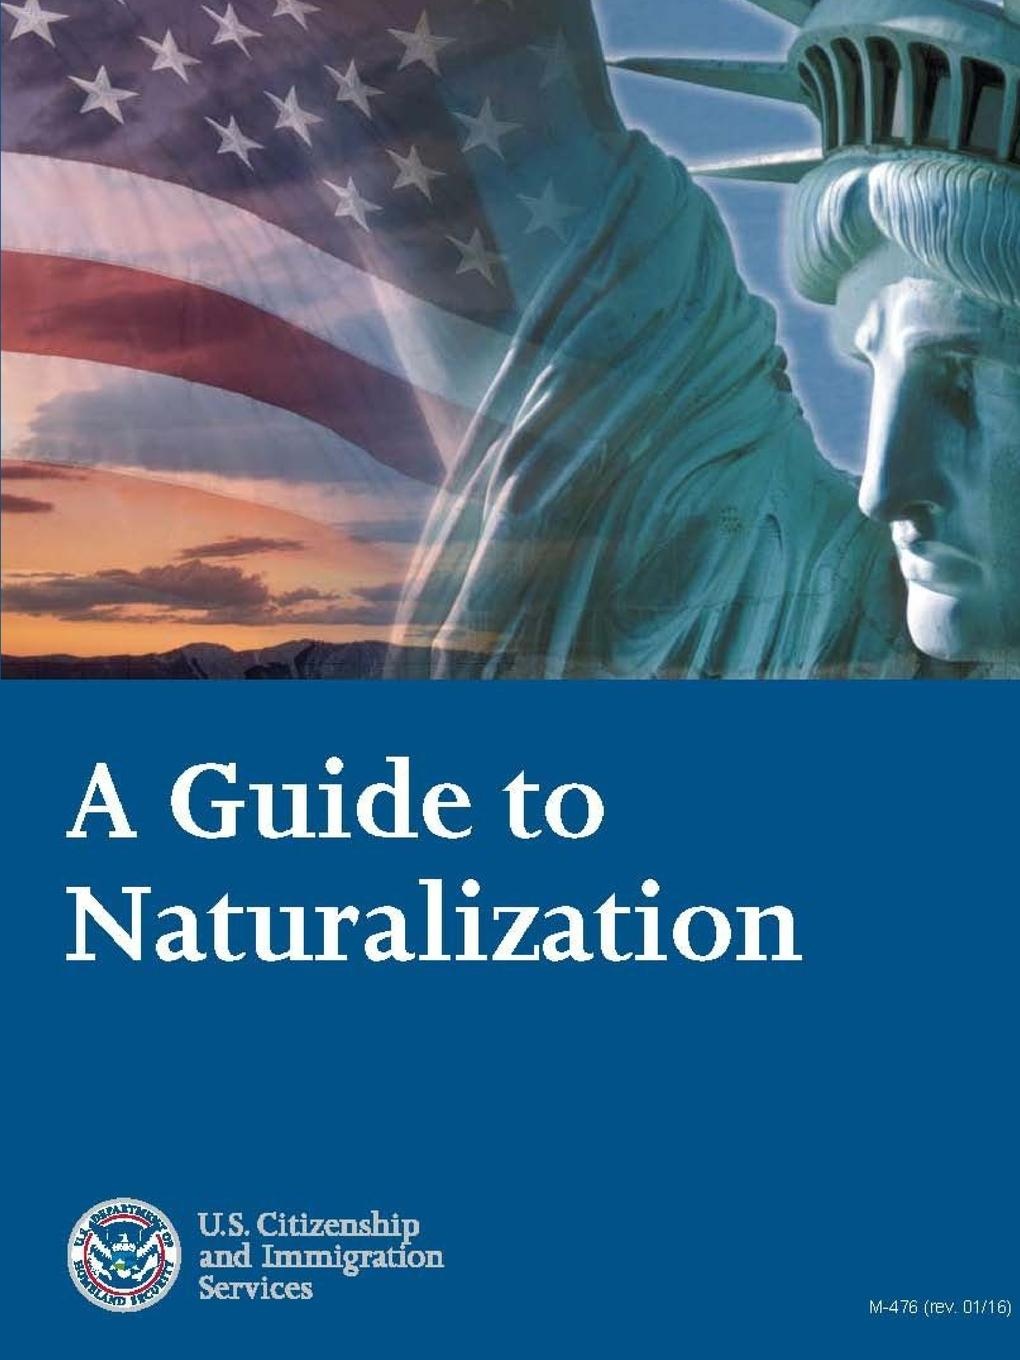 U.S. Citizenship and Immigratio (USCIS) A Guide to Naturalization joe ungemah misplaced talent a guide to better people decisions